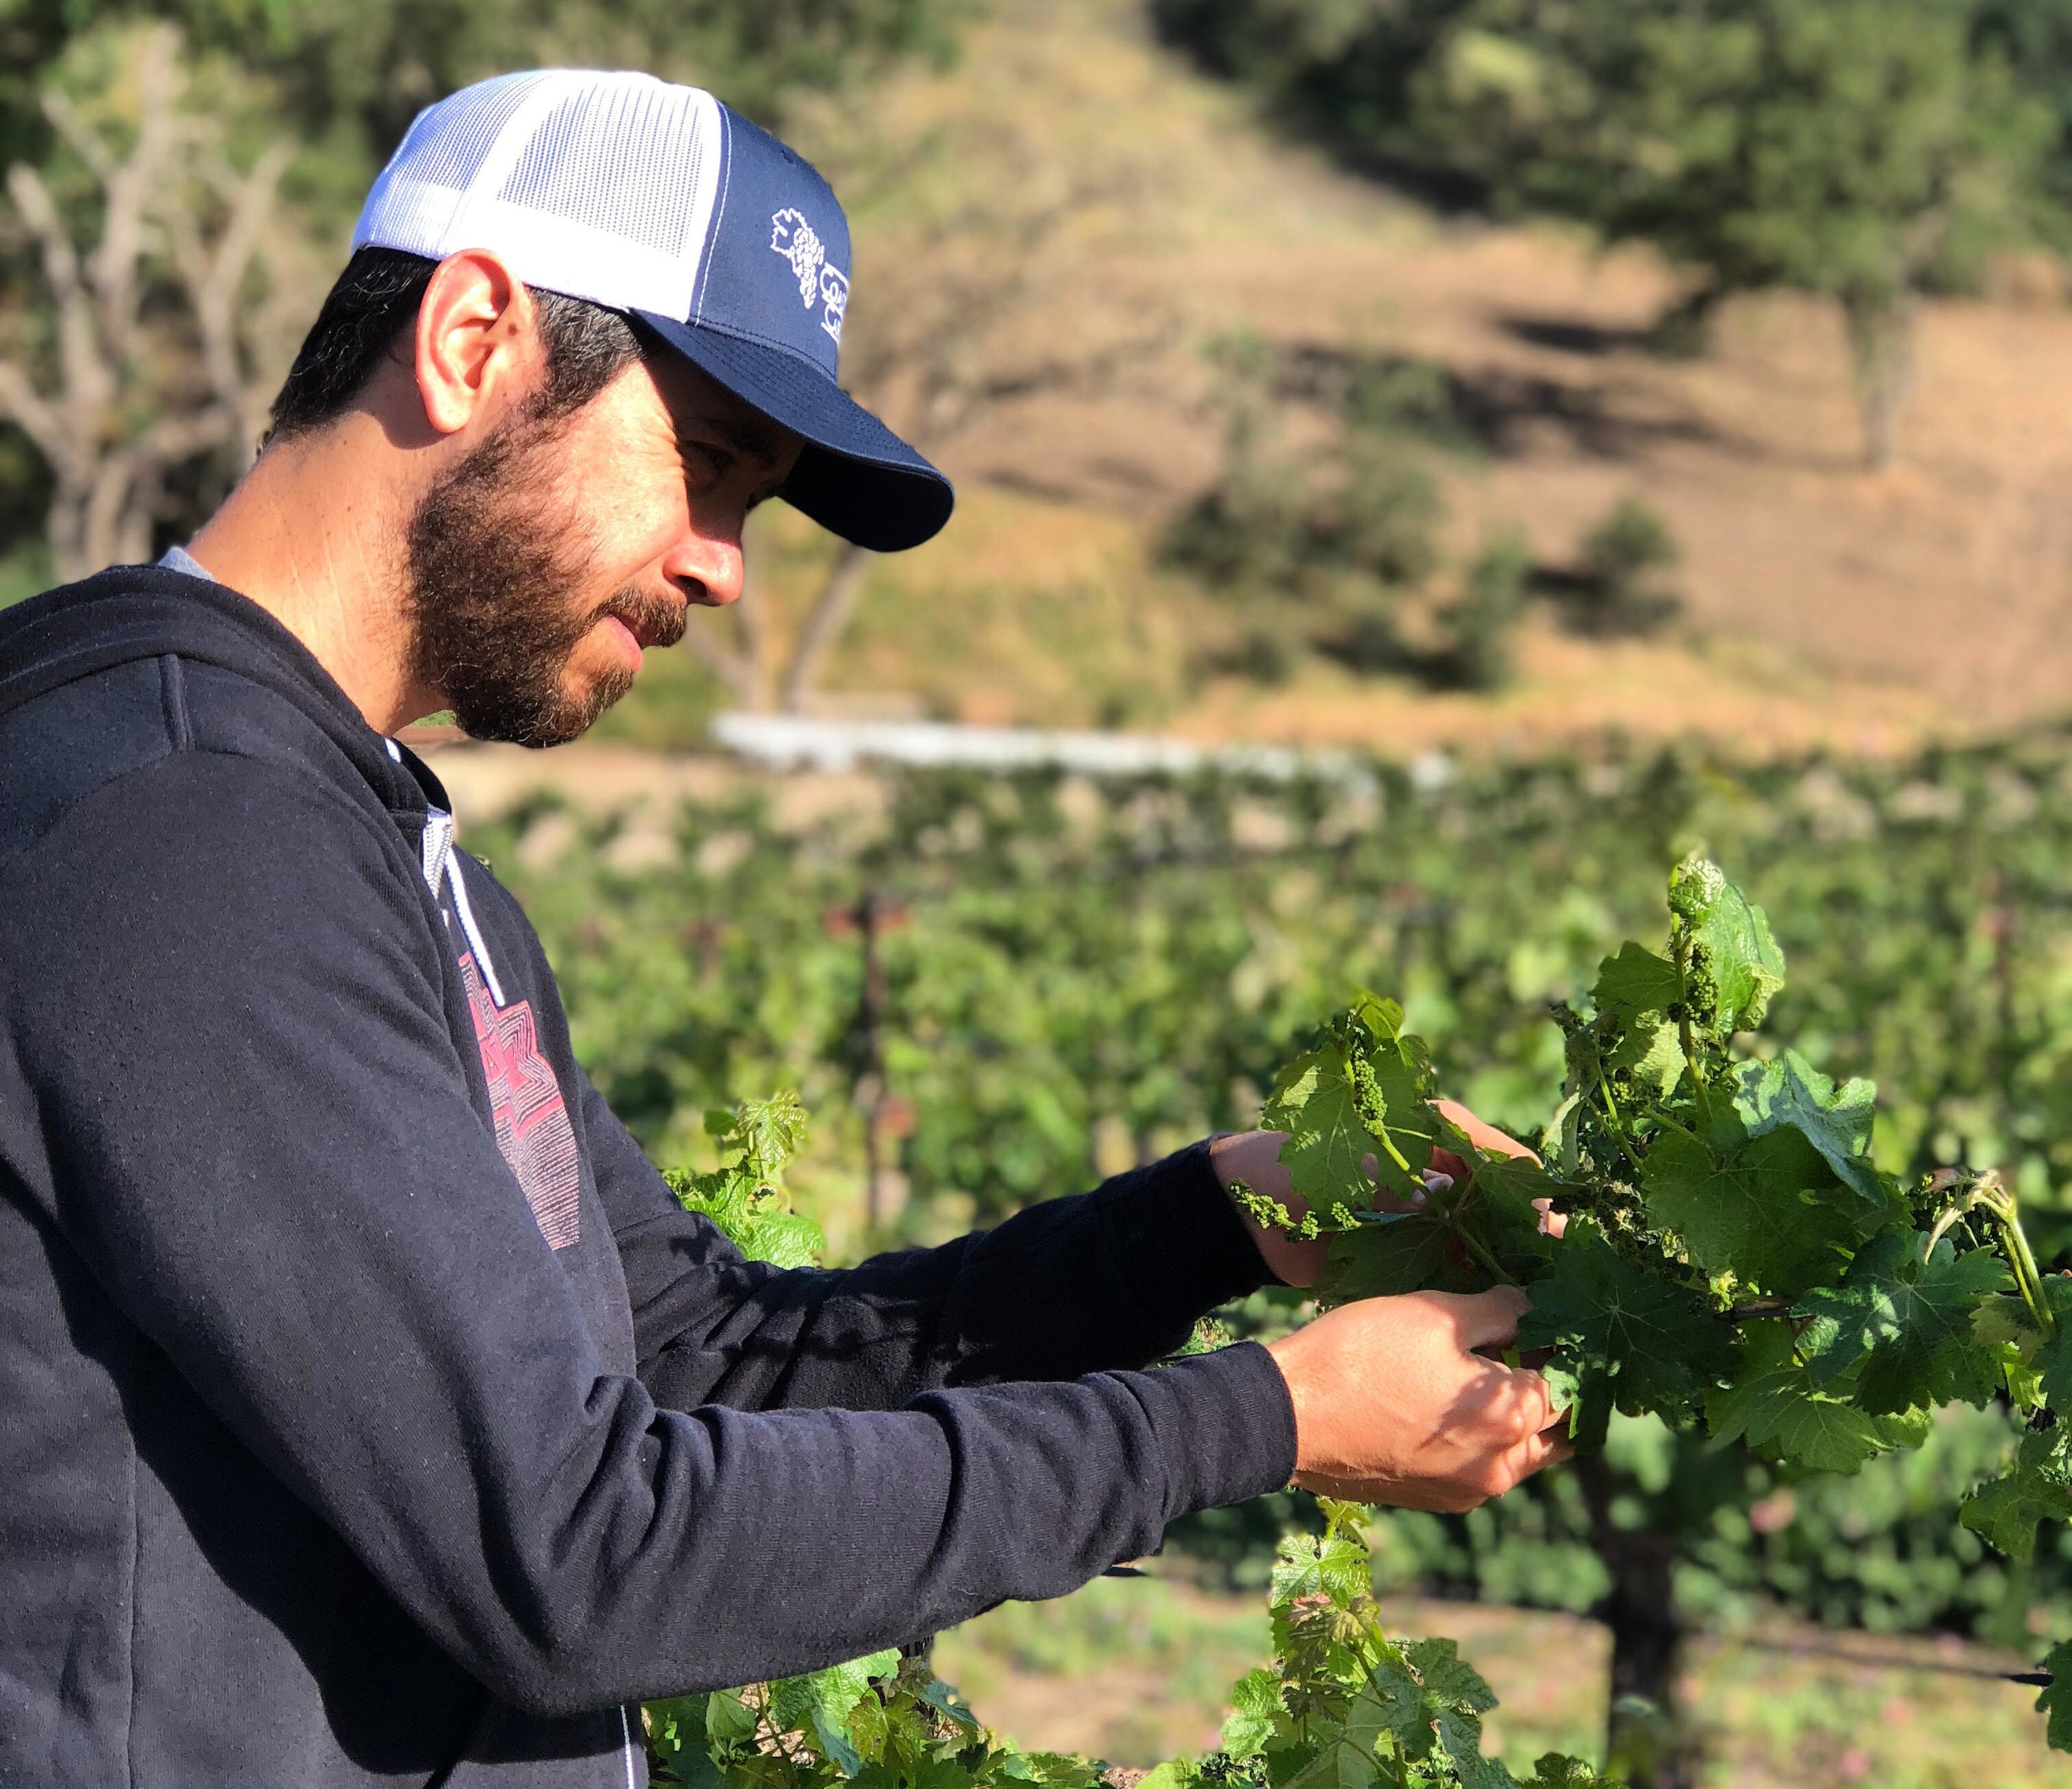 Dusty Nabor - Winemaker Dusty Nabor's roots are in exclusive, low production boutique wines. We wanted to bring this knowledge and craftsmanship to a wine with an affordable price on a larger scale. NSO Wine was born.